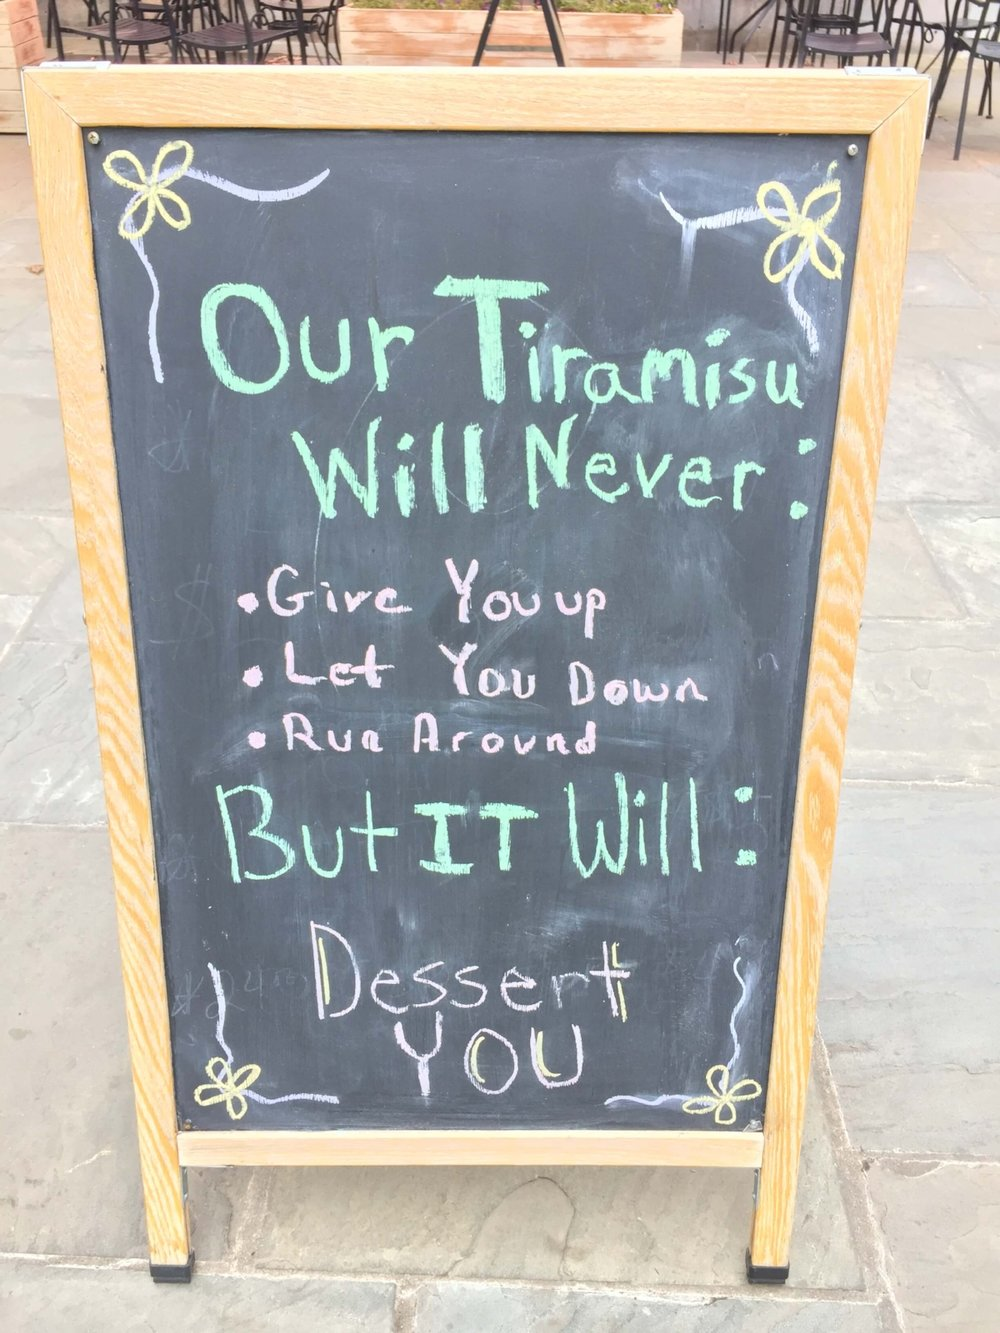 Saw this in front of Driftwood Southern Kitchen in Raleigh. Made me laugh right out loud!